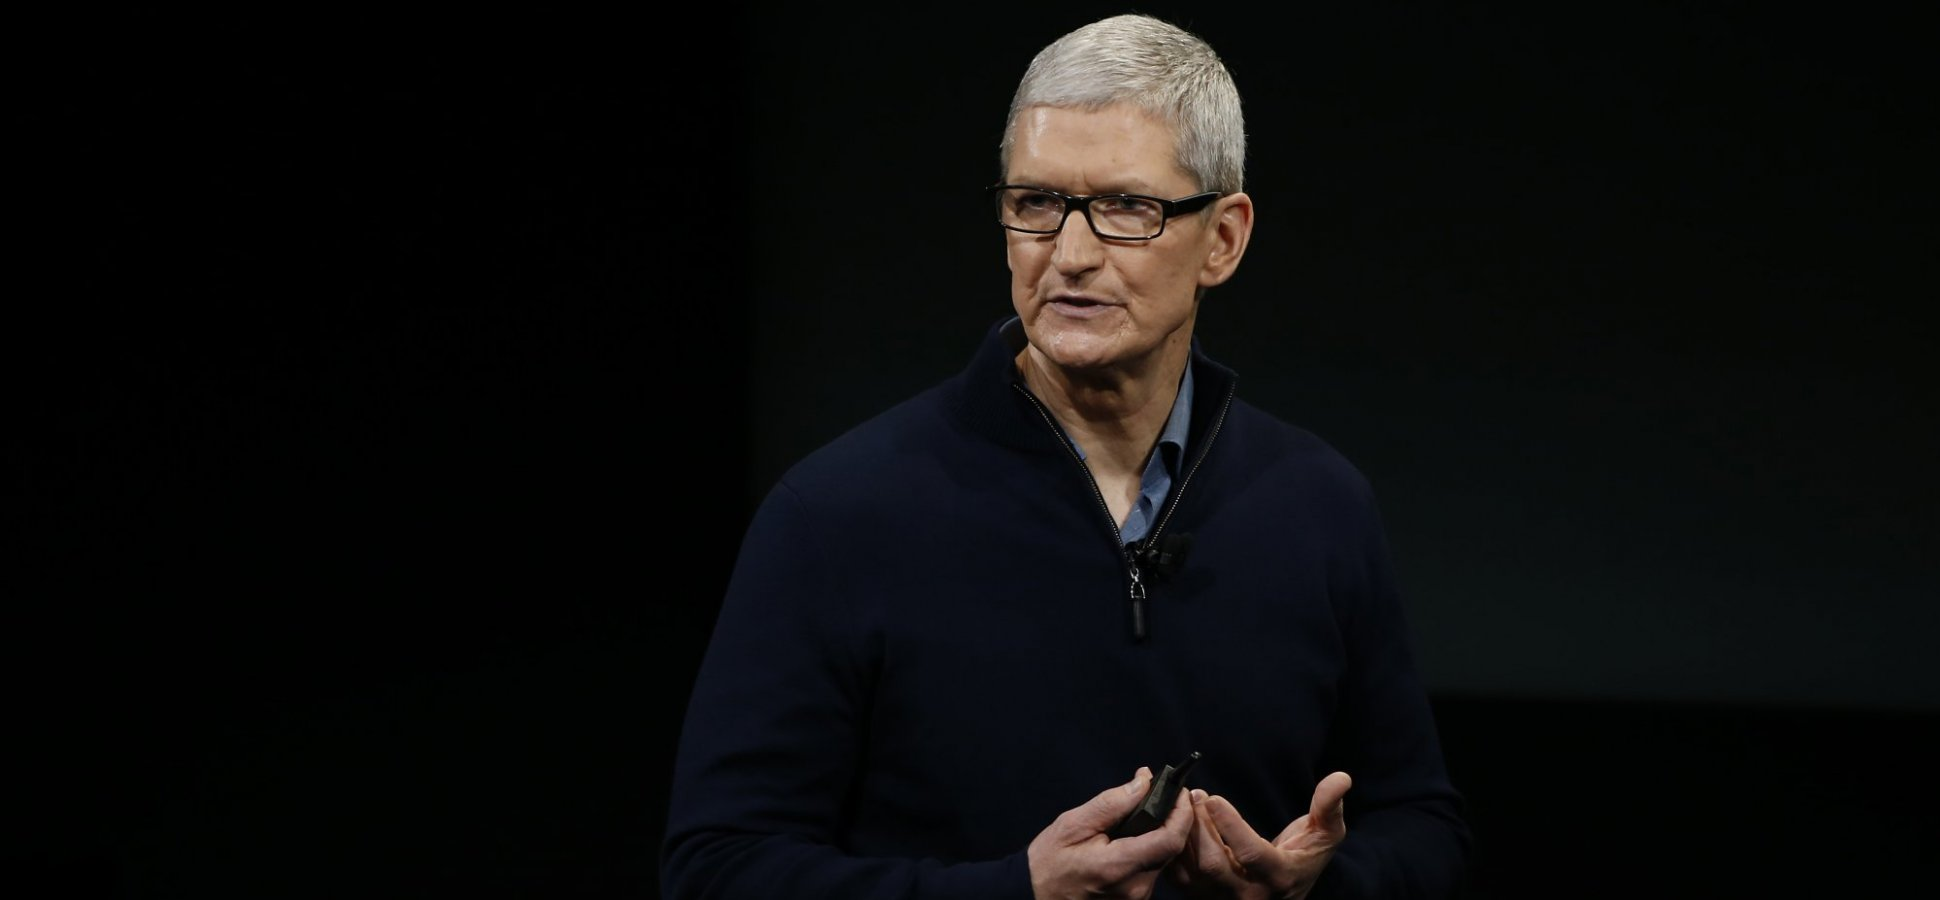 In His Commencement Speech at Stanford, Apple's Tim Cook Urged Graduates To Do This 1 Thing